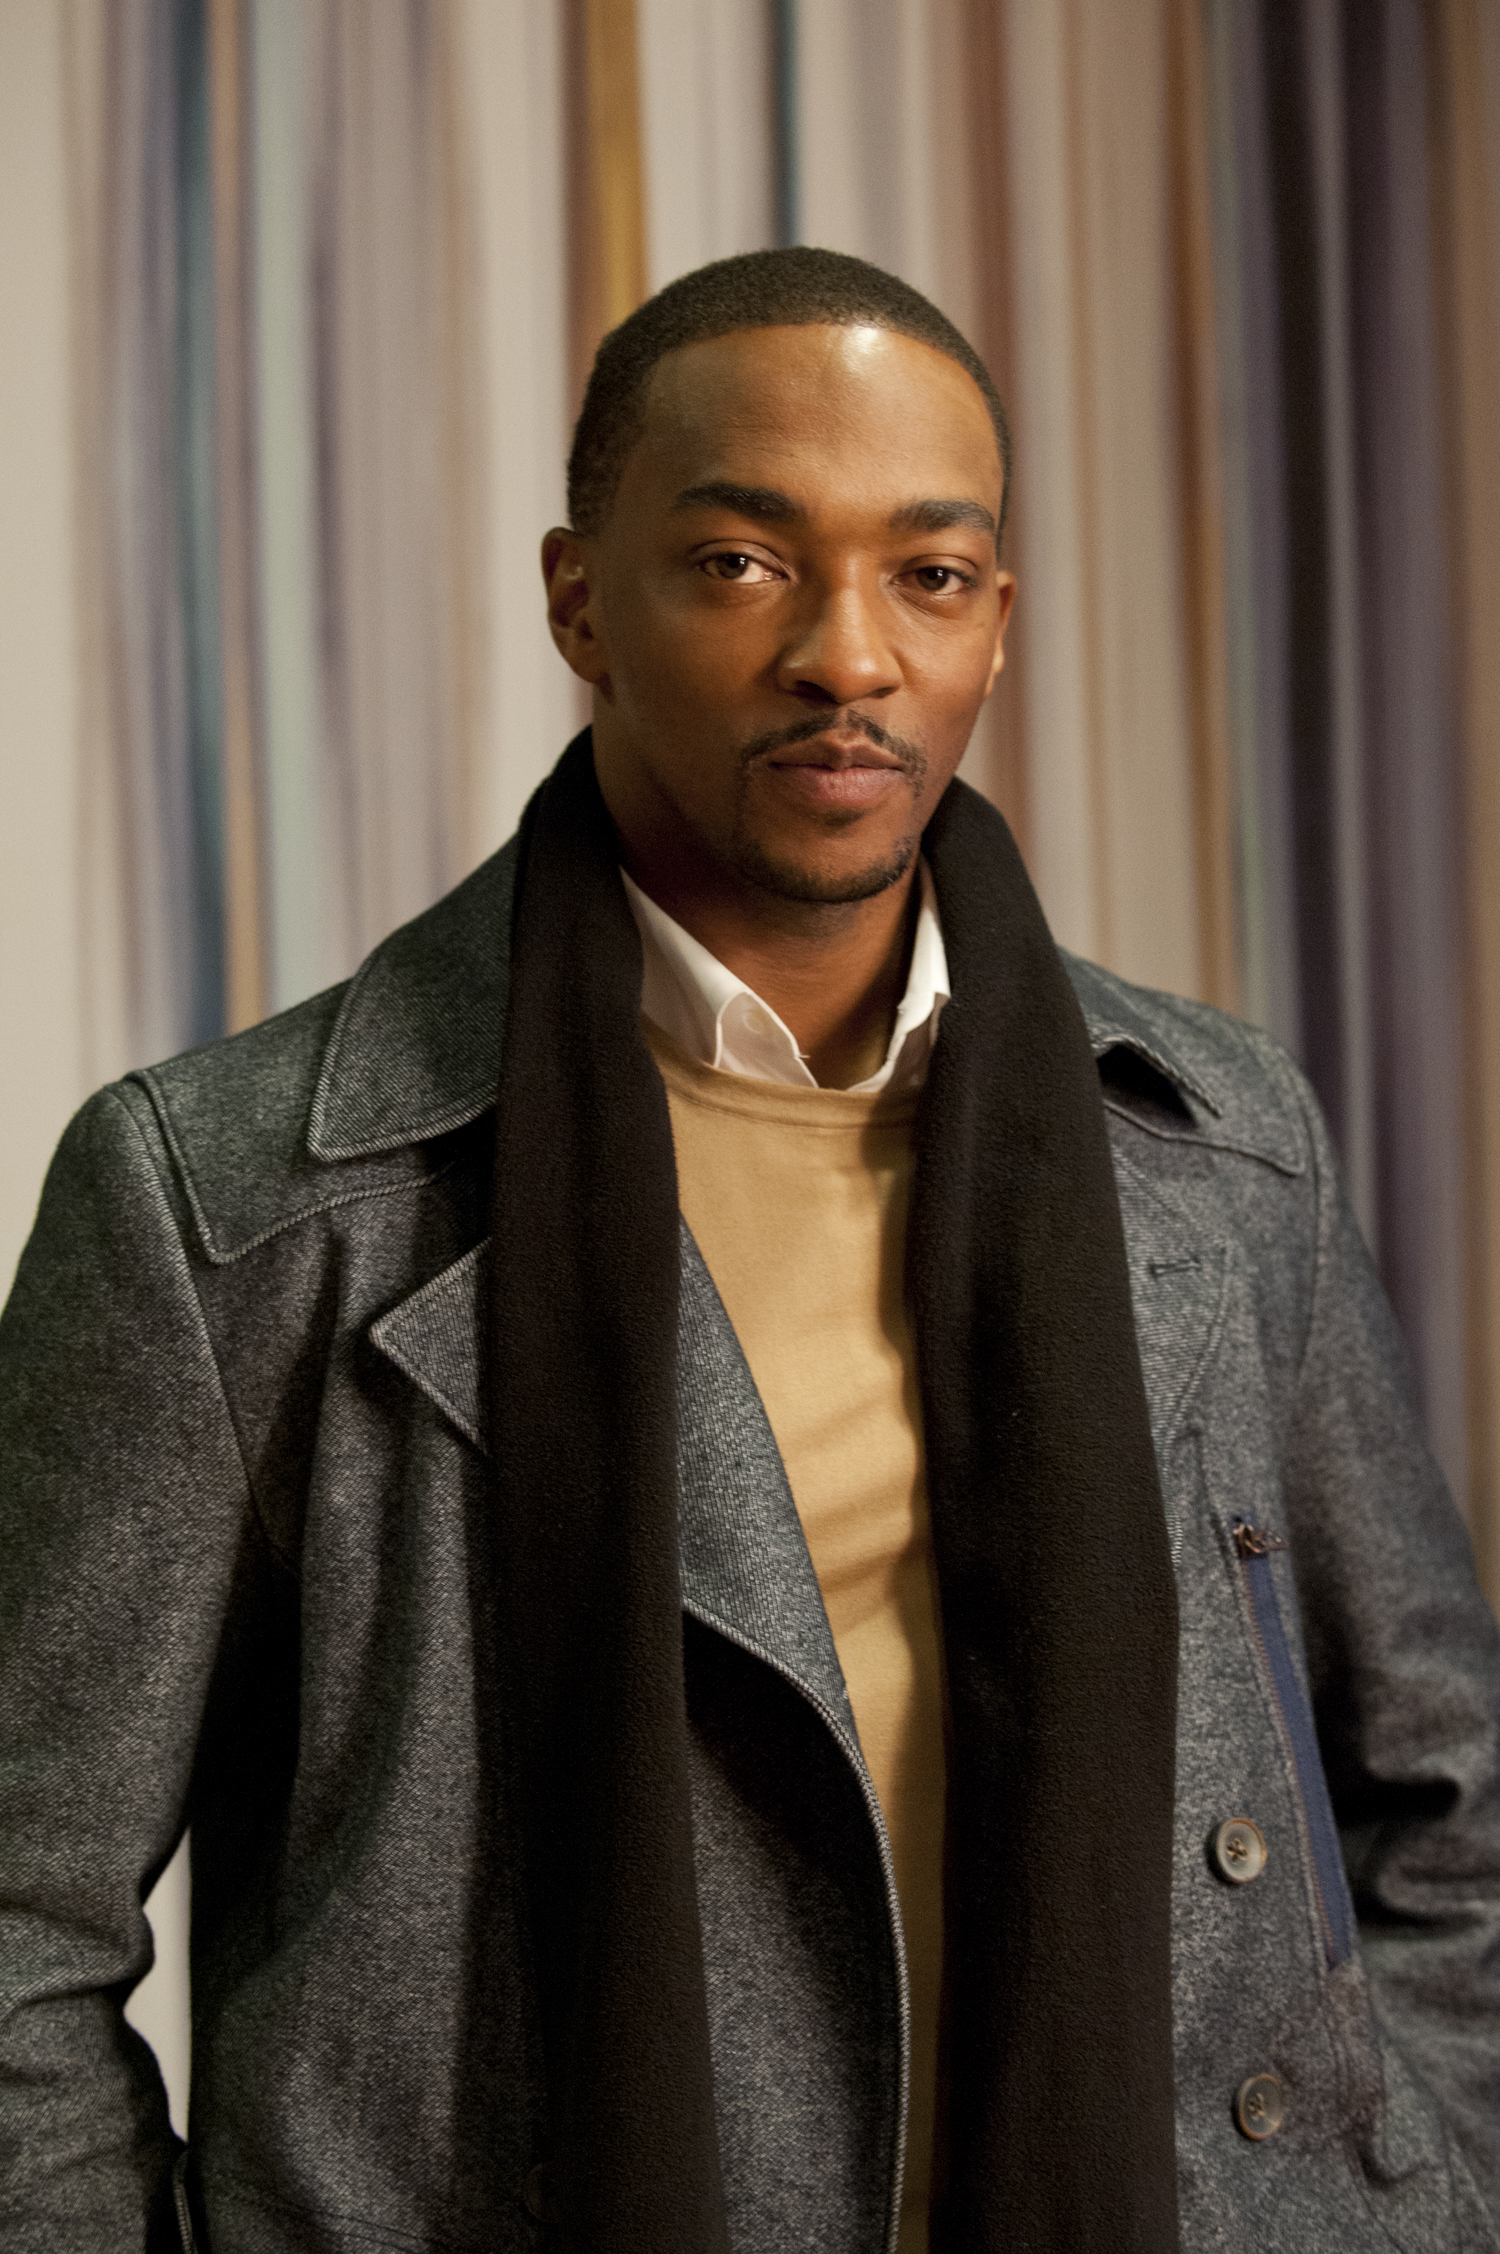 Anthony Mackie for HuffPost Live